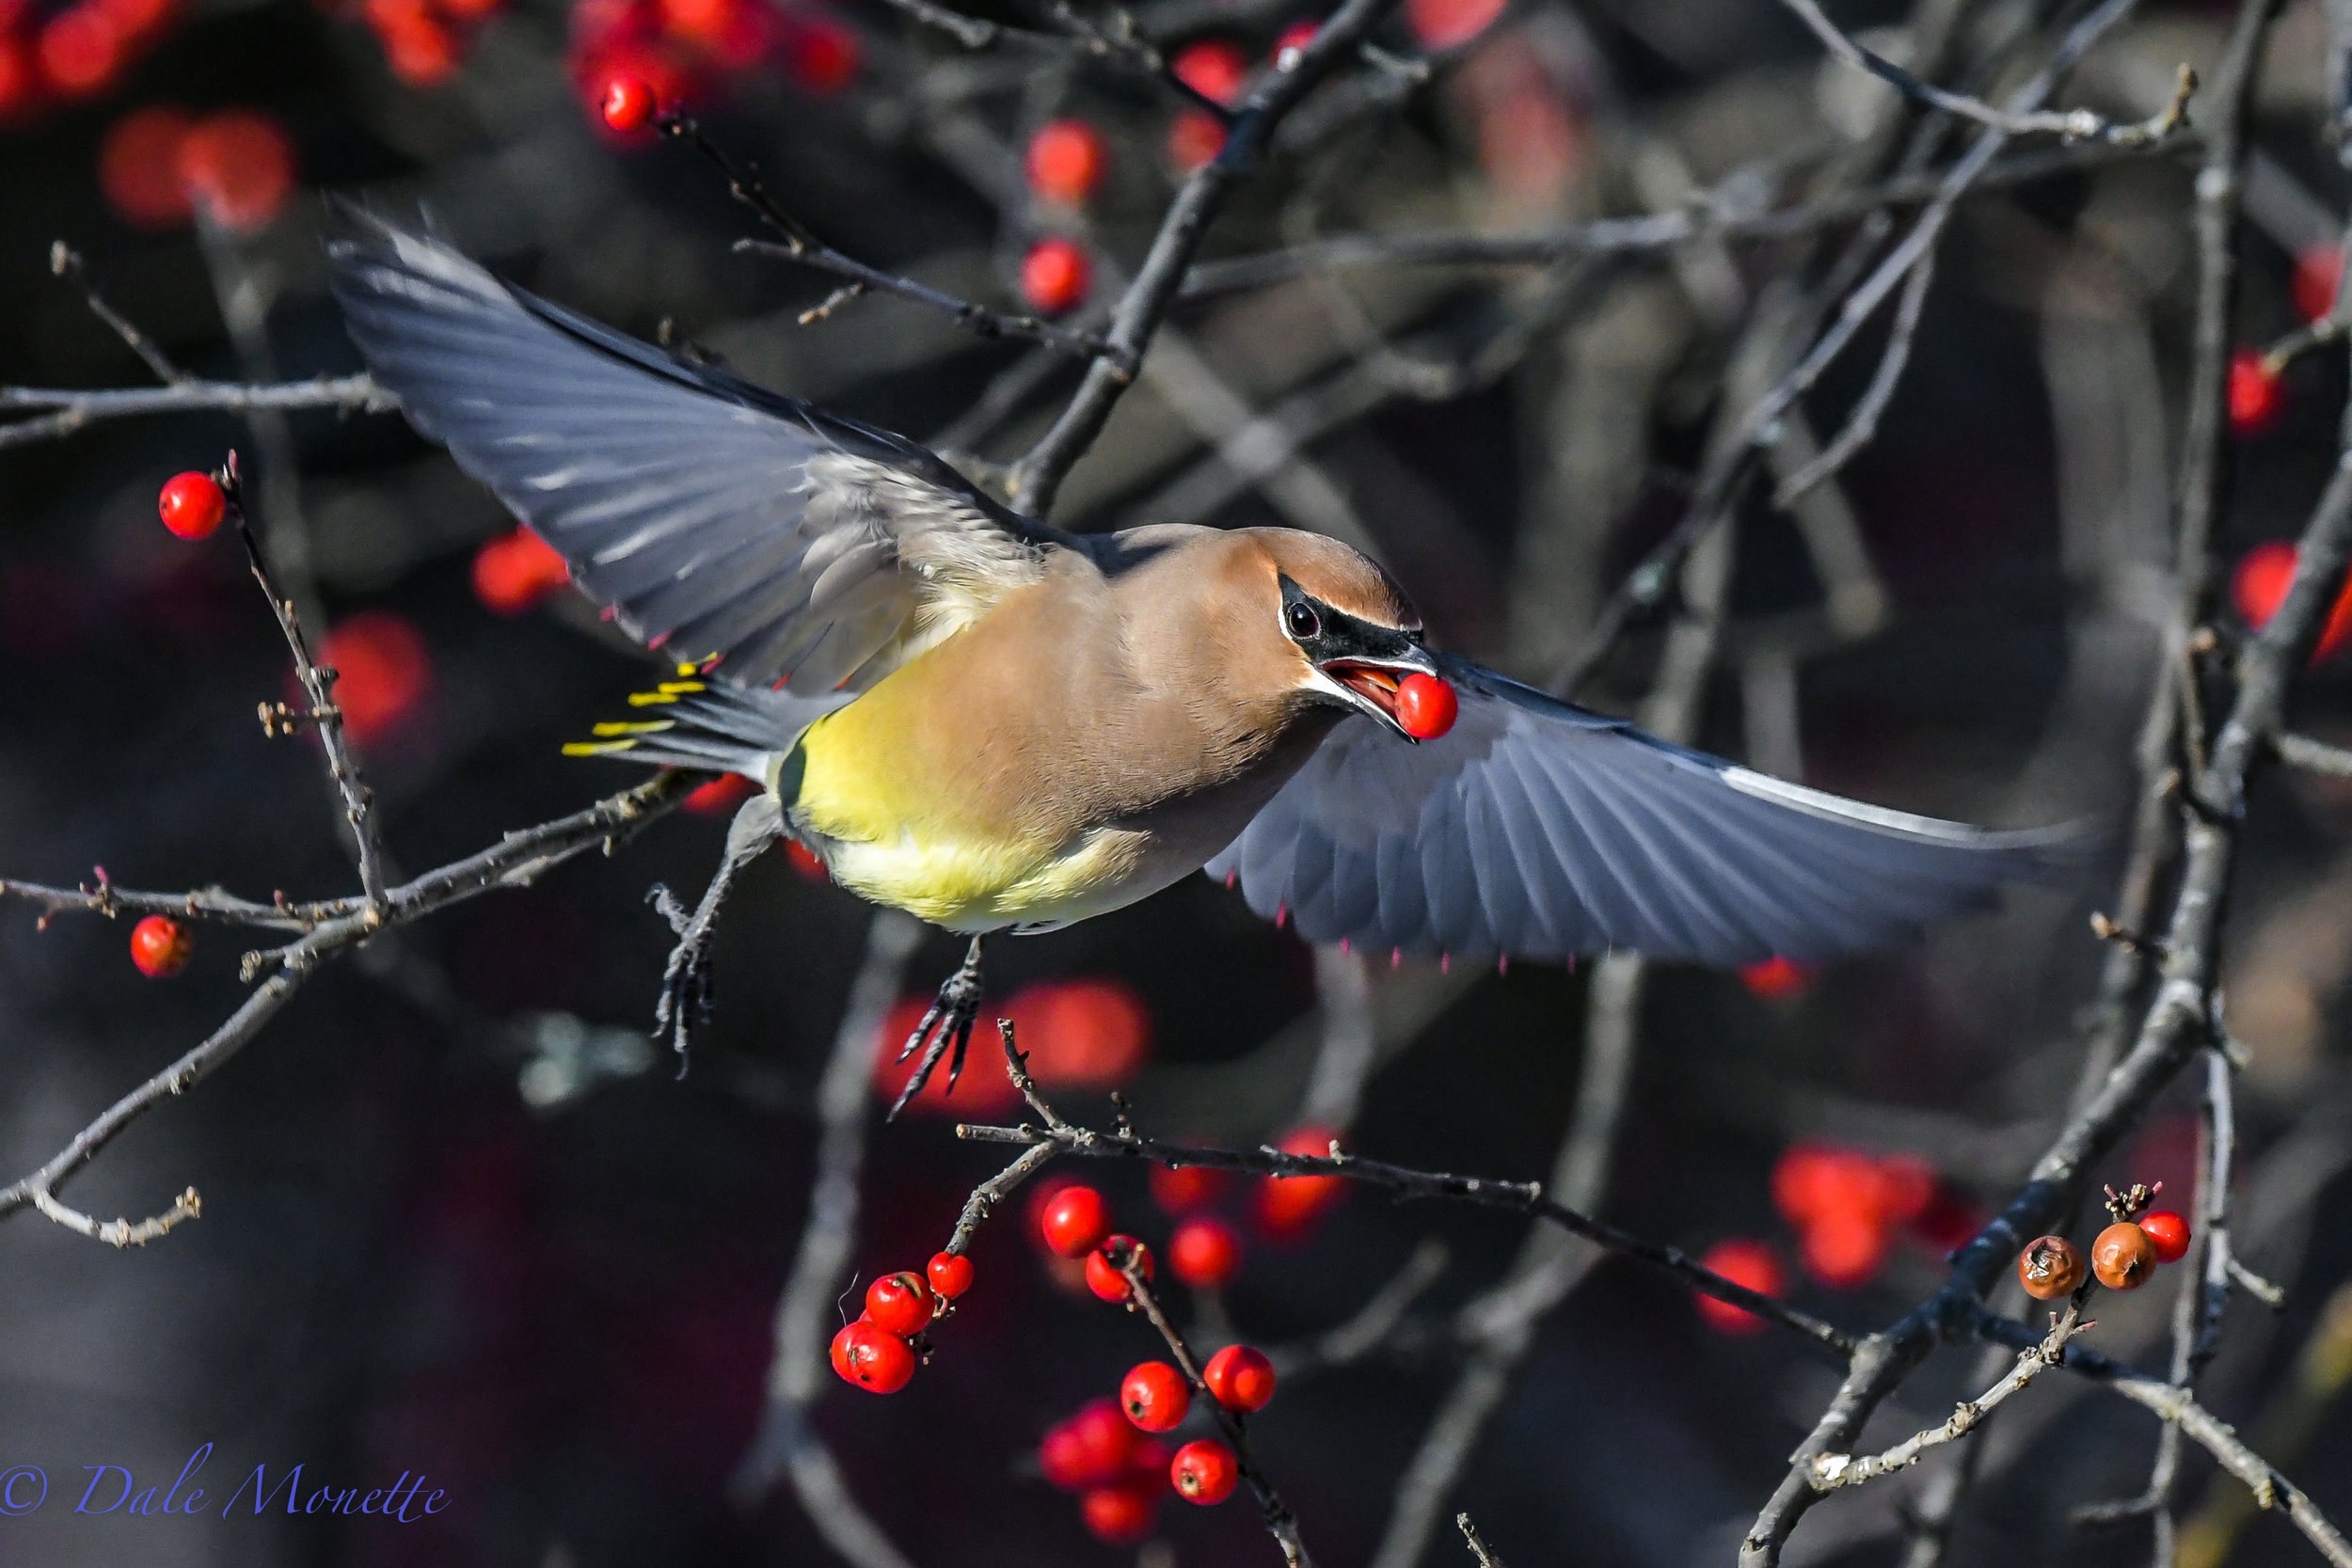 A flock of cedar waxwings have stripped about 10 thousand winter berries from our winter berry bush the last couple of days. Here's one making off a prize!..